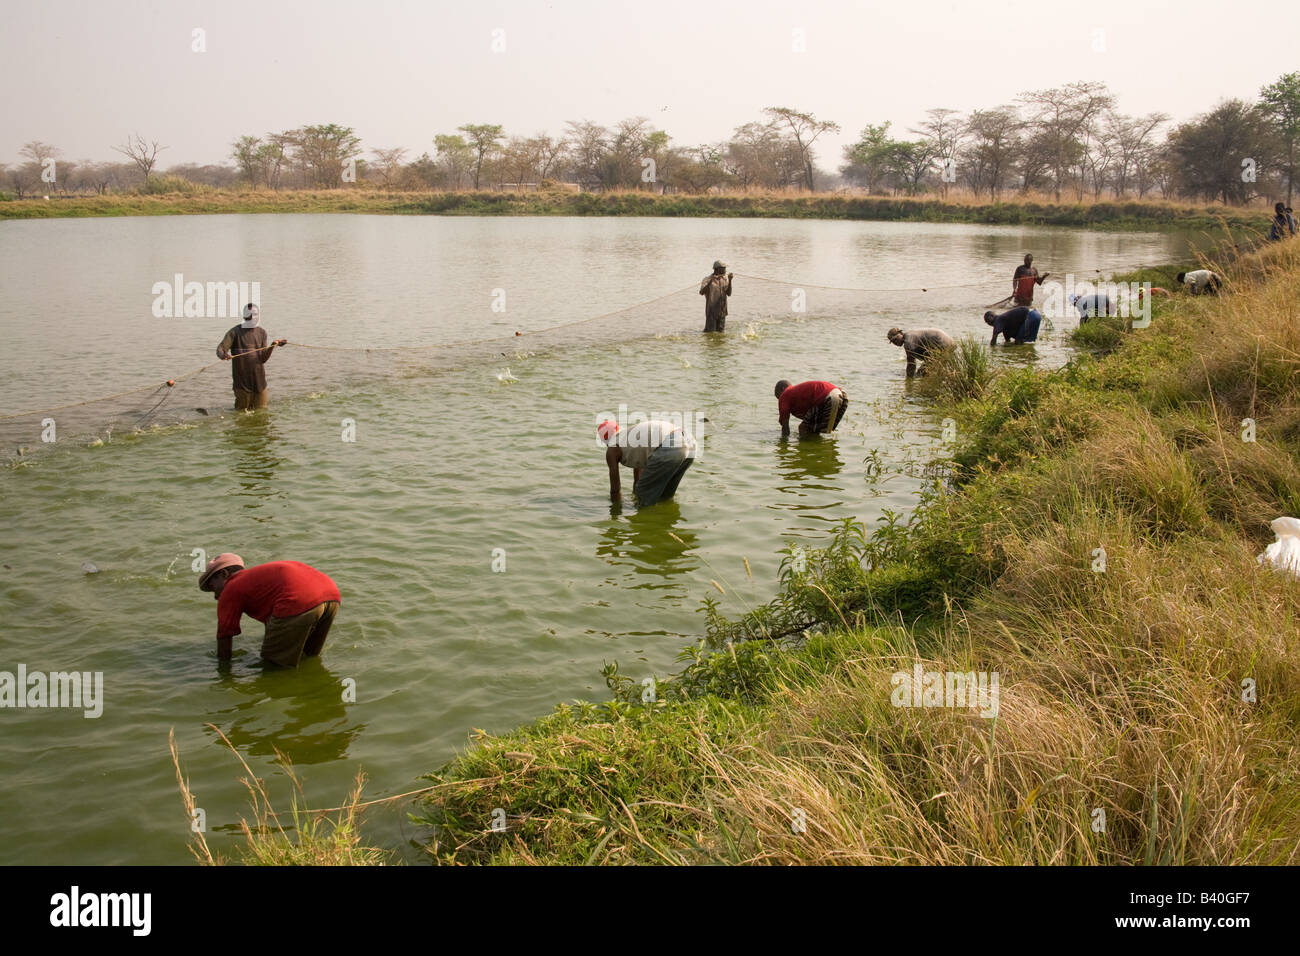 harvesting tilapia fish from